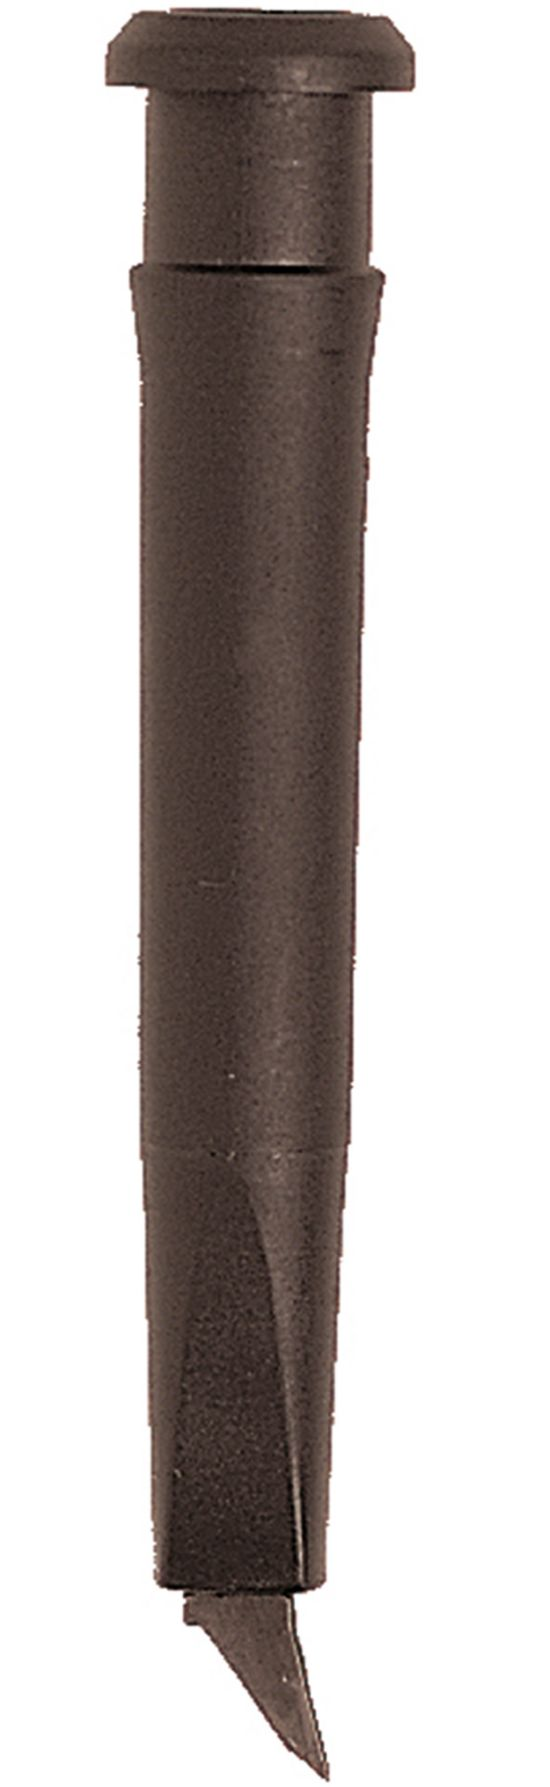 Ferrule Mountain Piggholk 10 mm